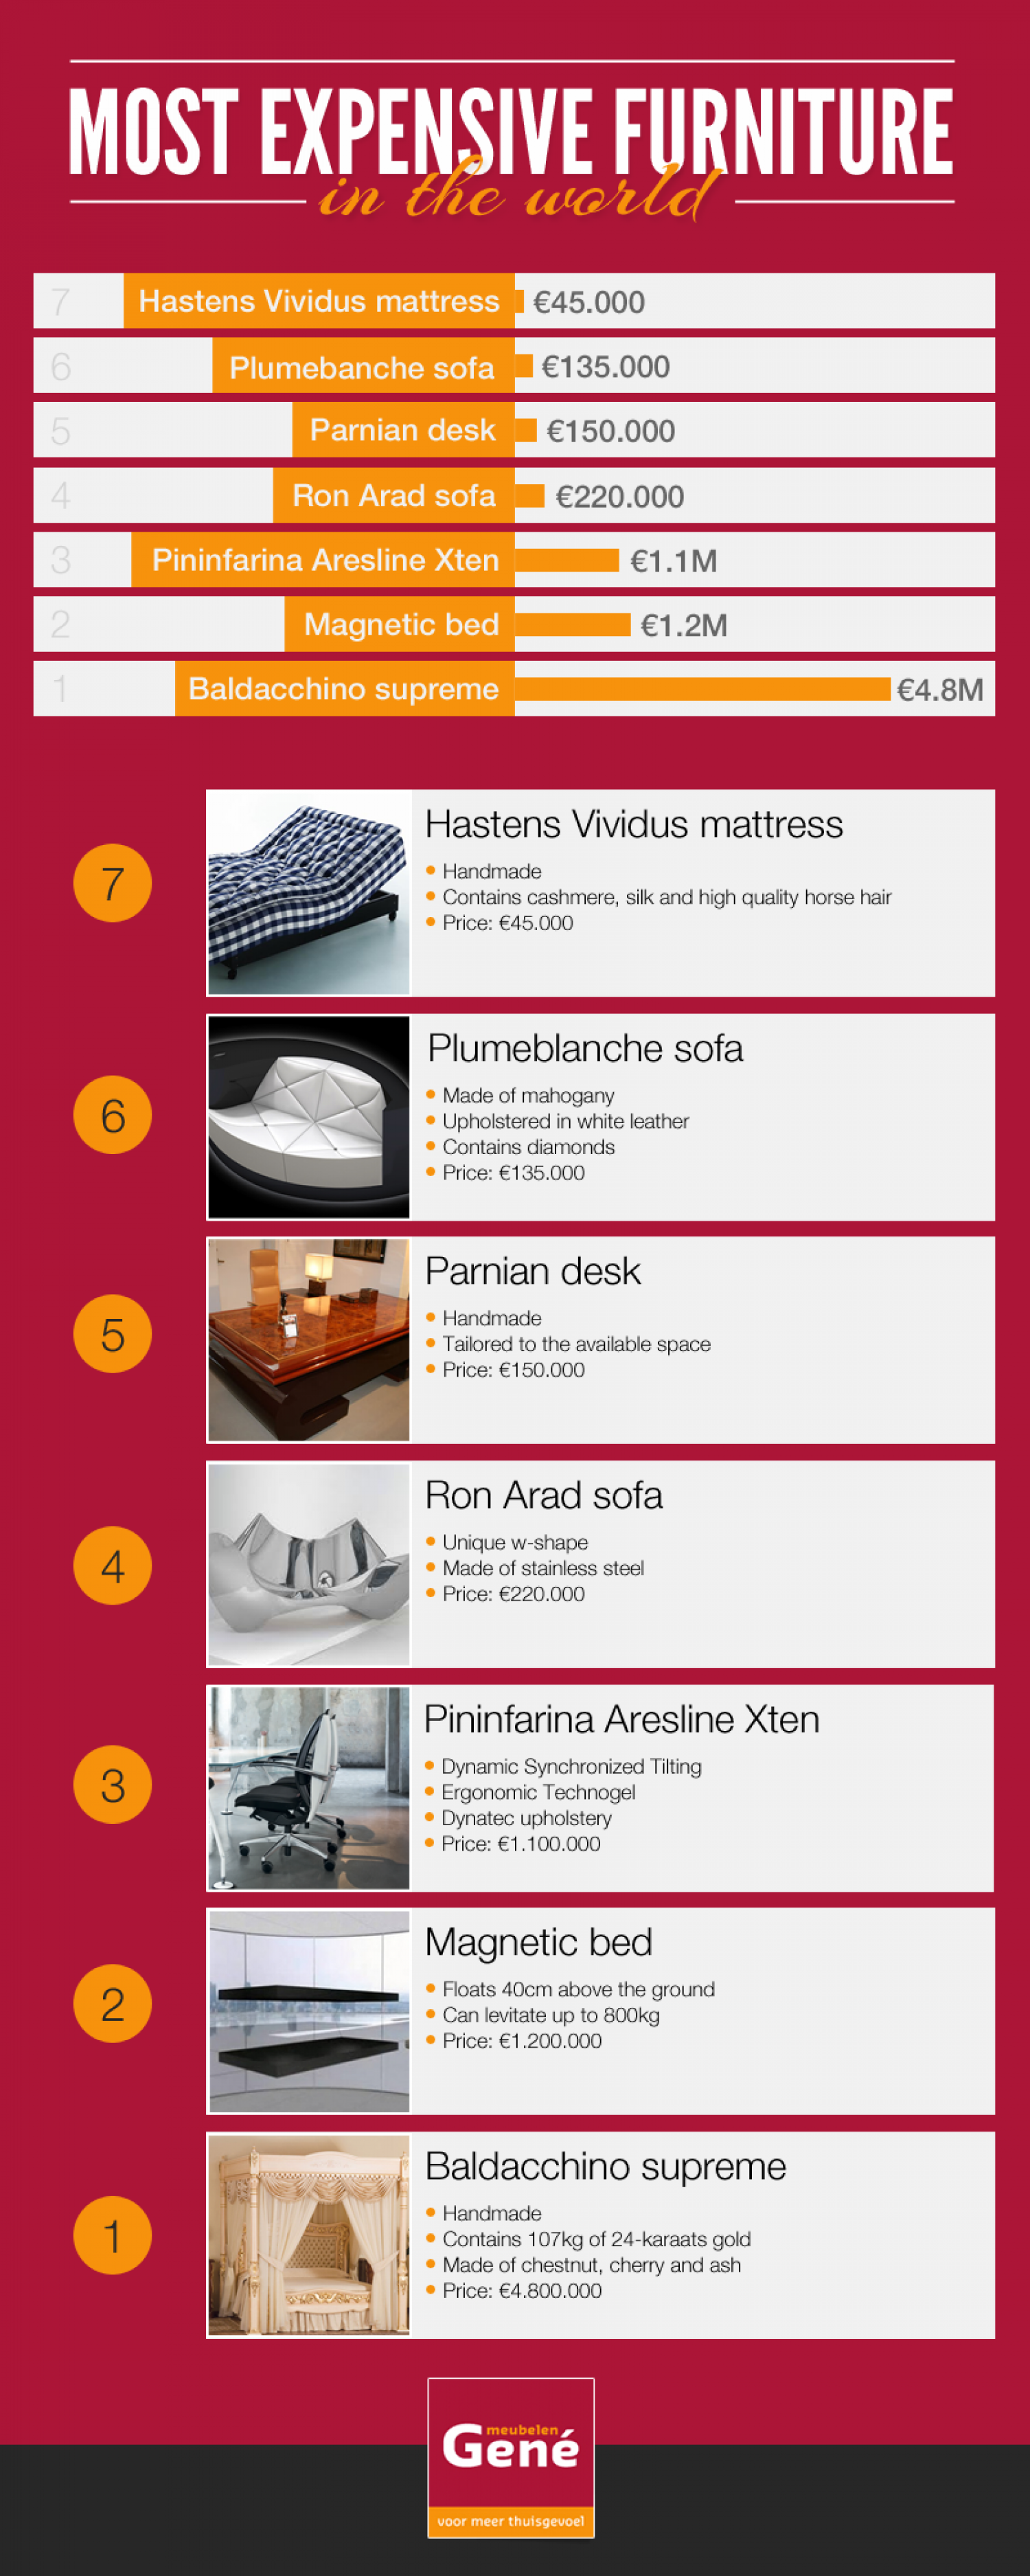 Most Expensive Furniture in the World Infographic